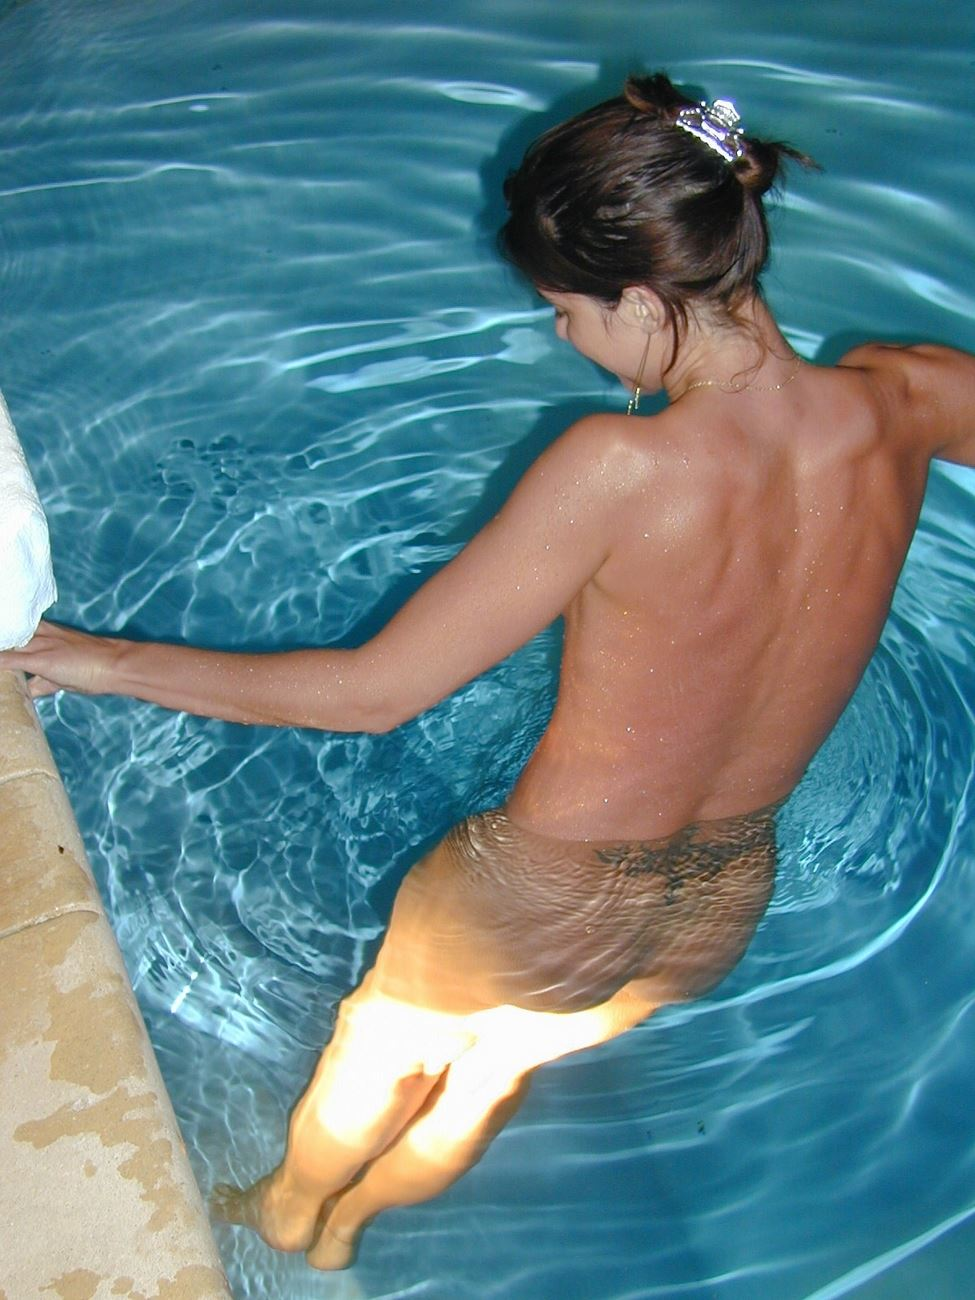 Naked Amateur Teen Skinny Dipping In Swimming Pool  Nude -2225